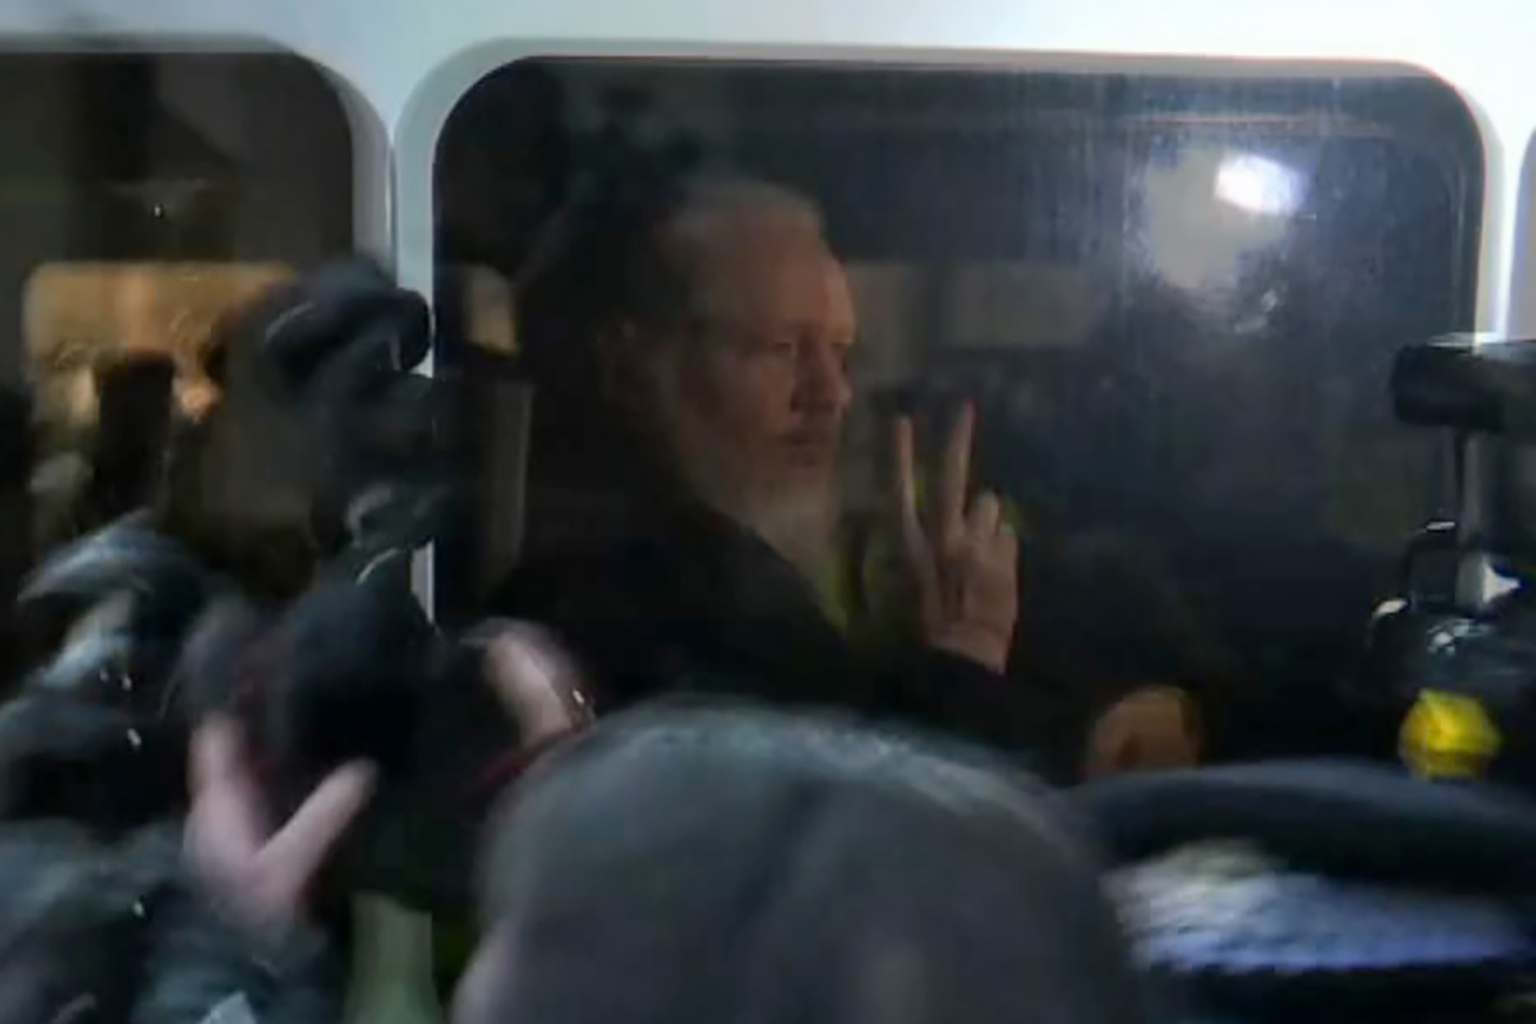 WikiLeaks founder Julian Assange is driven by British Police hours after being arrested in Ecuador's embassy on an extradition request from the United States on April 11. -/AFP/Getty Images